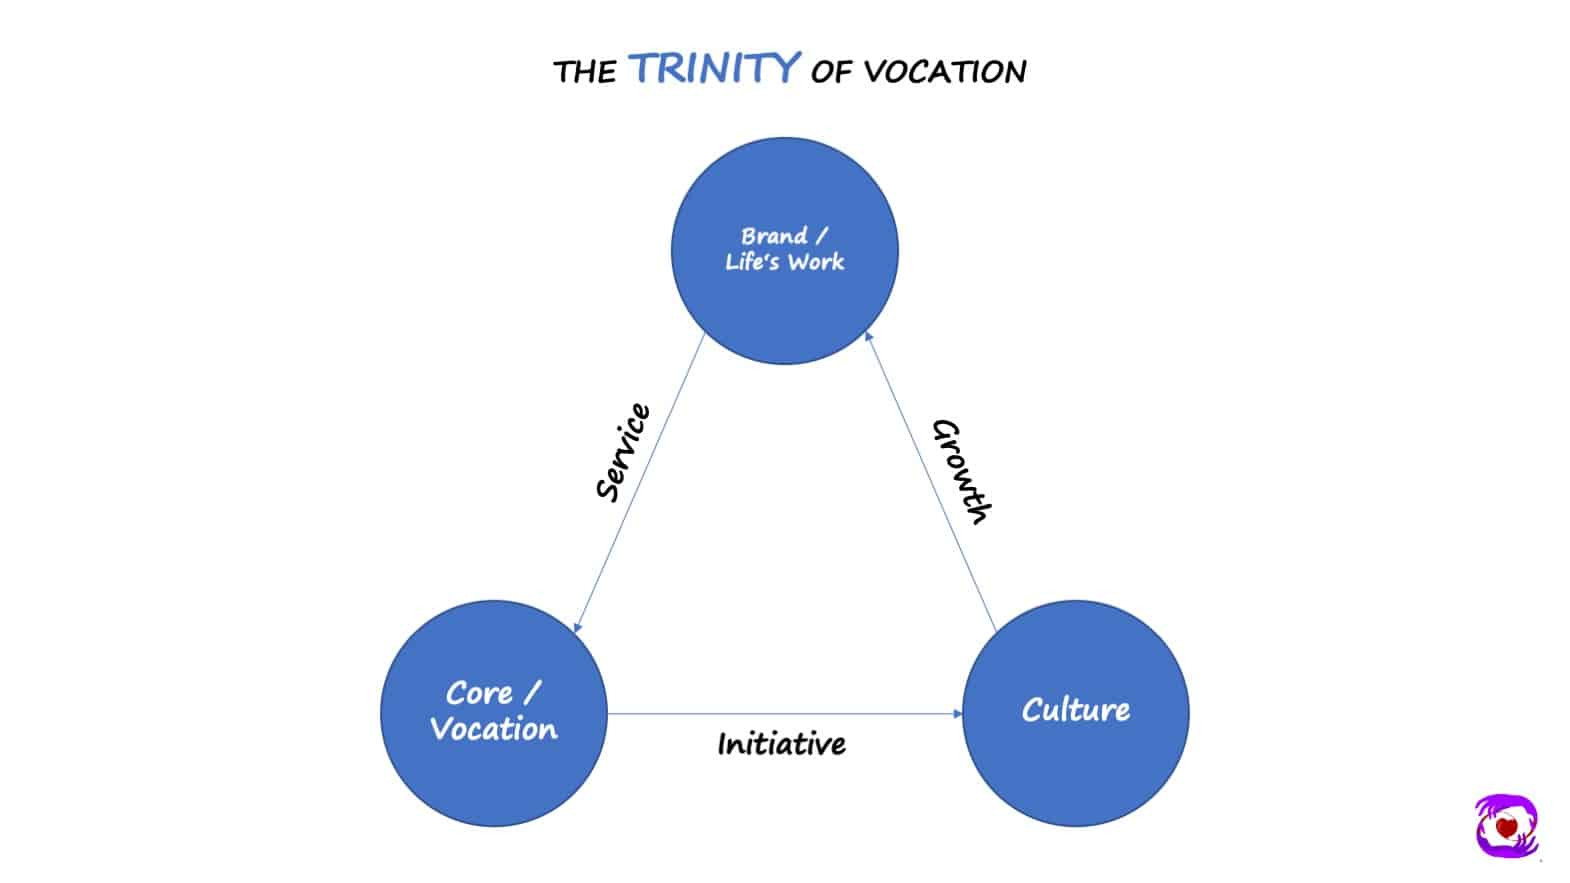 Trinity of Vocation